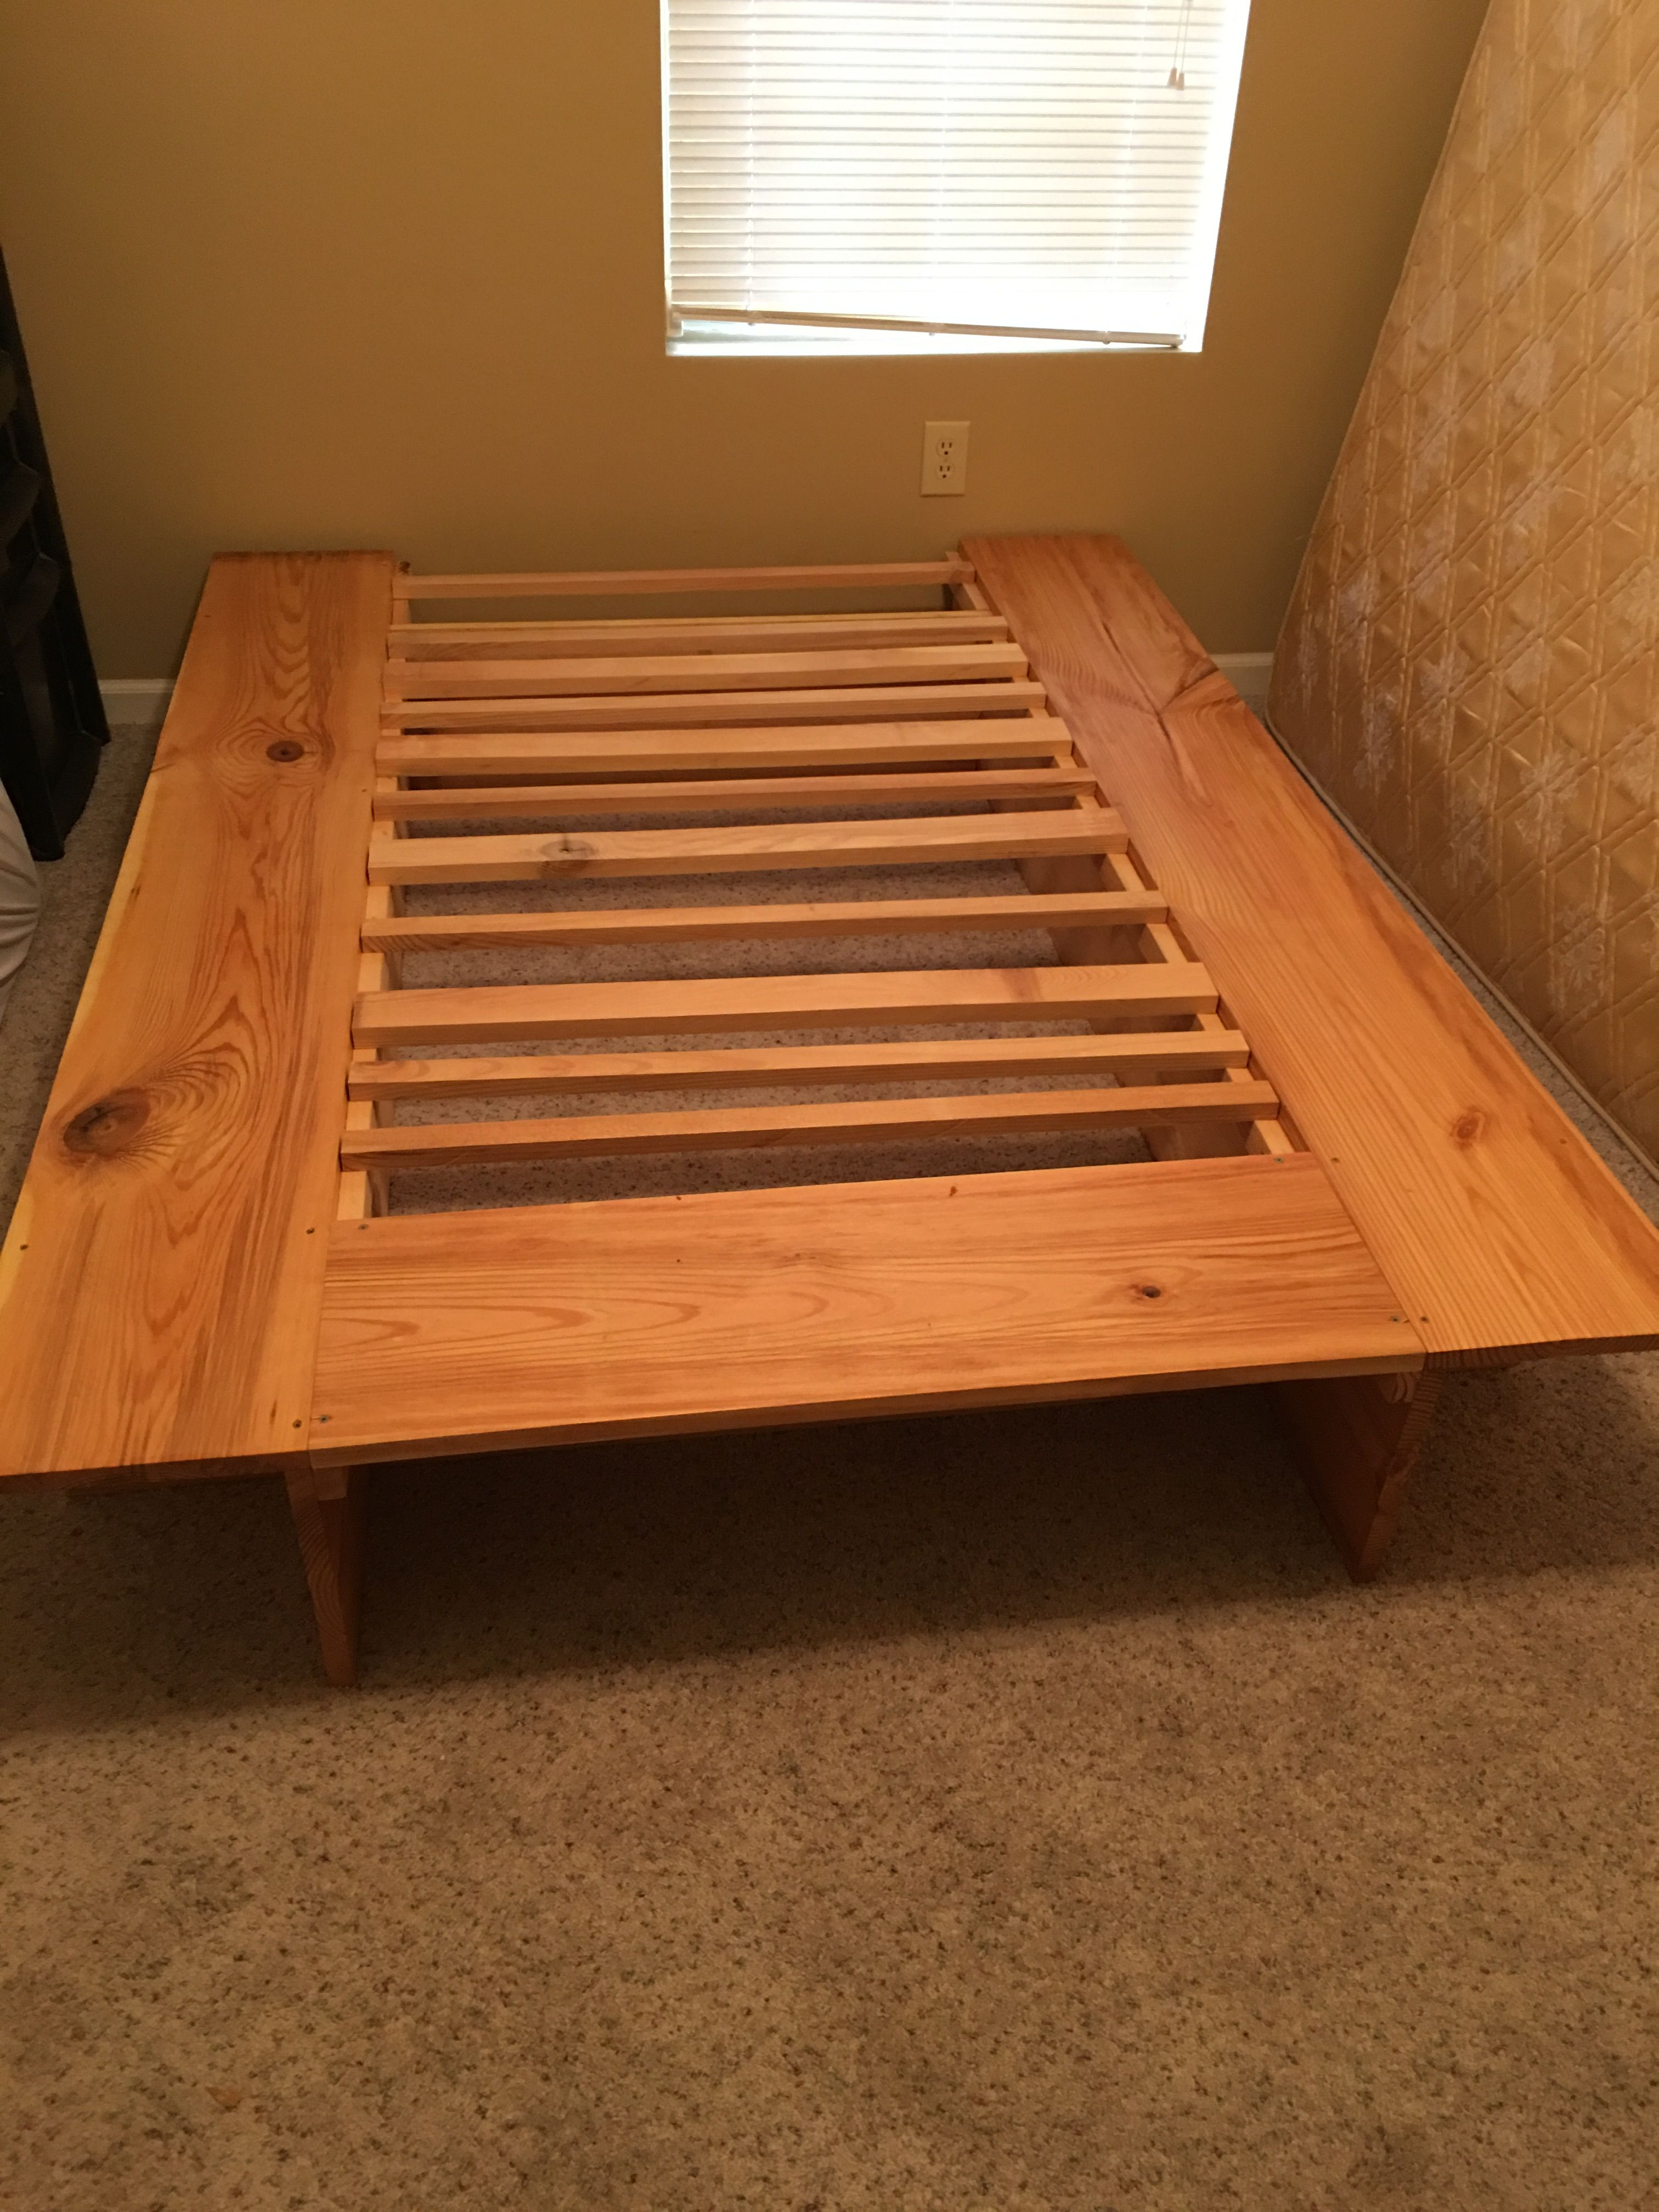 Queen Bed Frame Made From Rough Cut Pine I Got